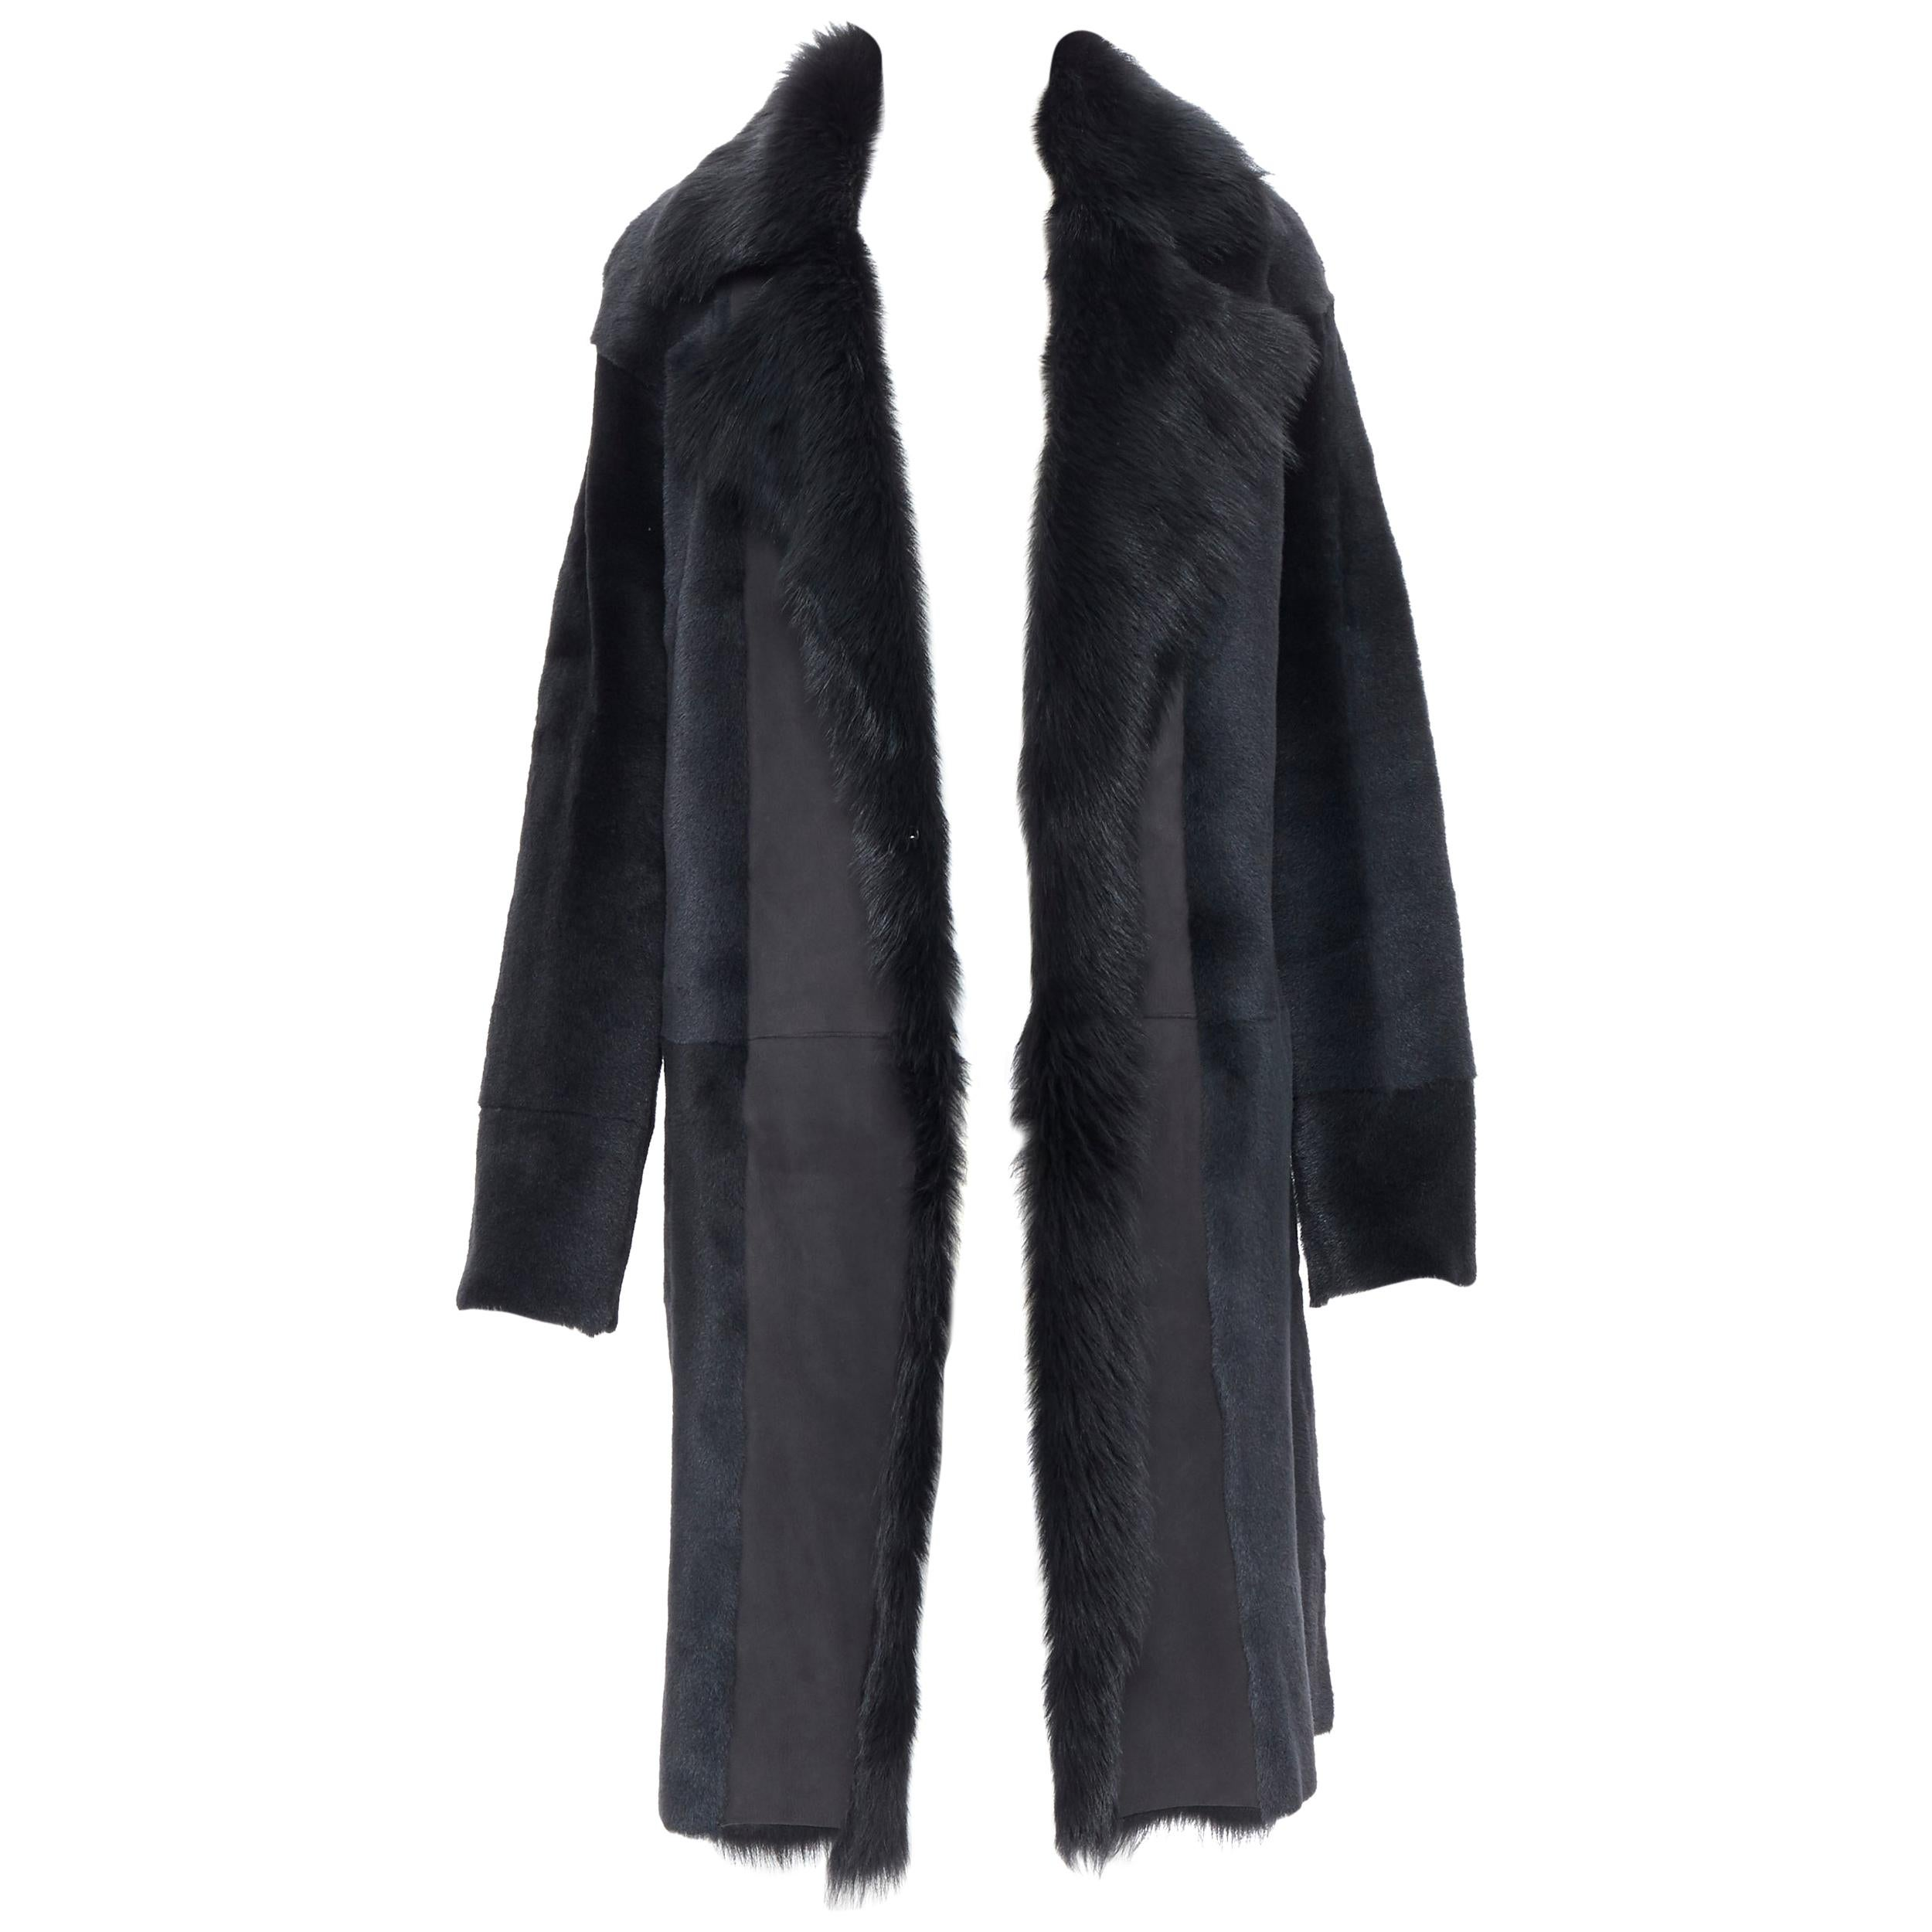 THEORY black dyed shearling lamb genuine fur leather oversized winter coat XS